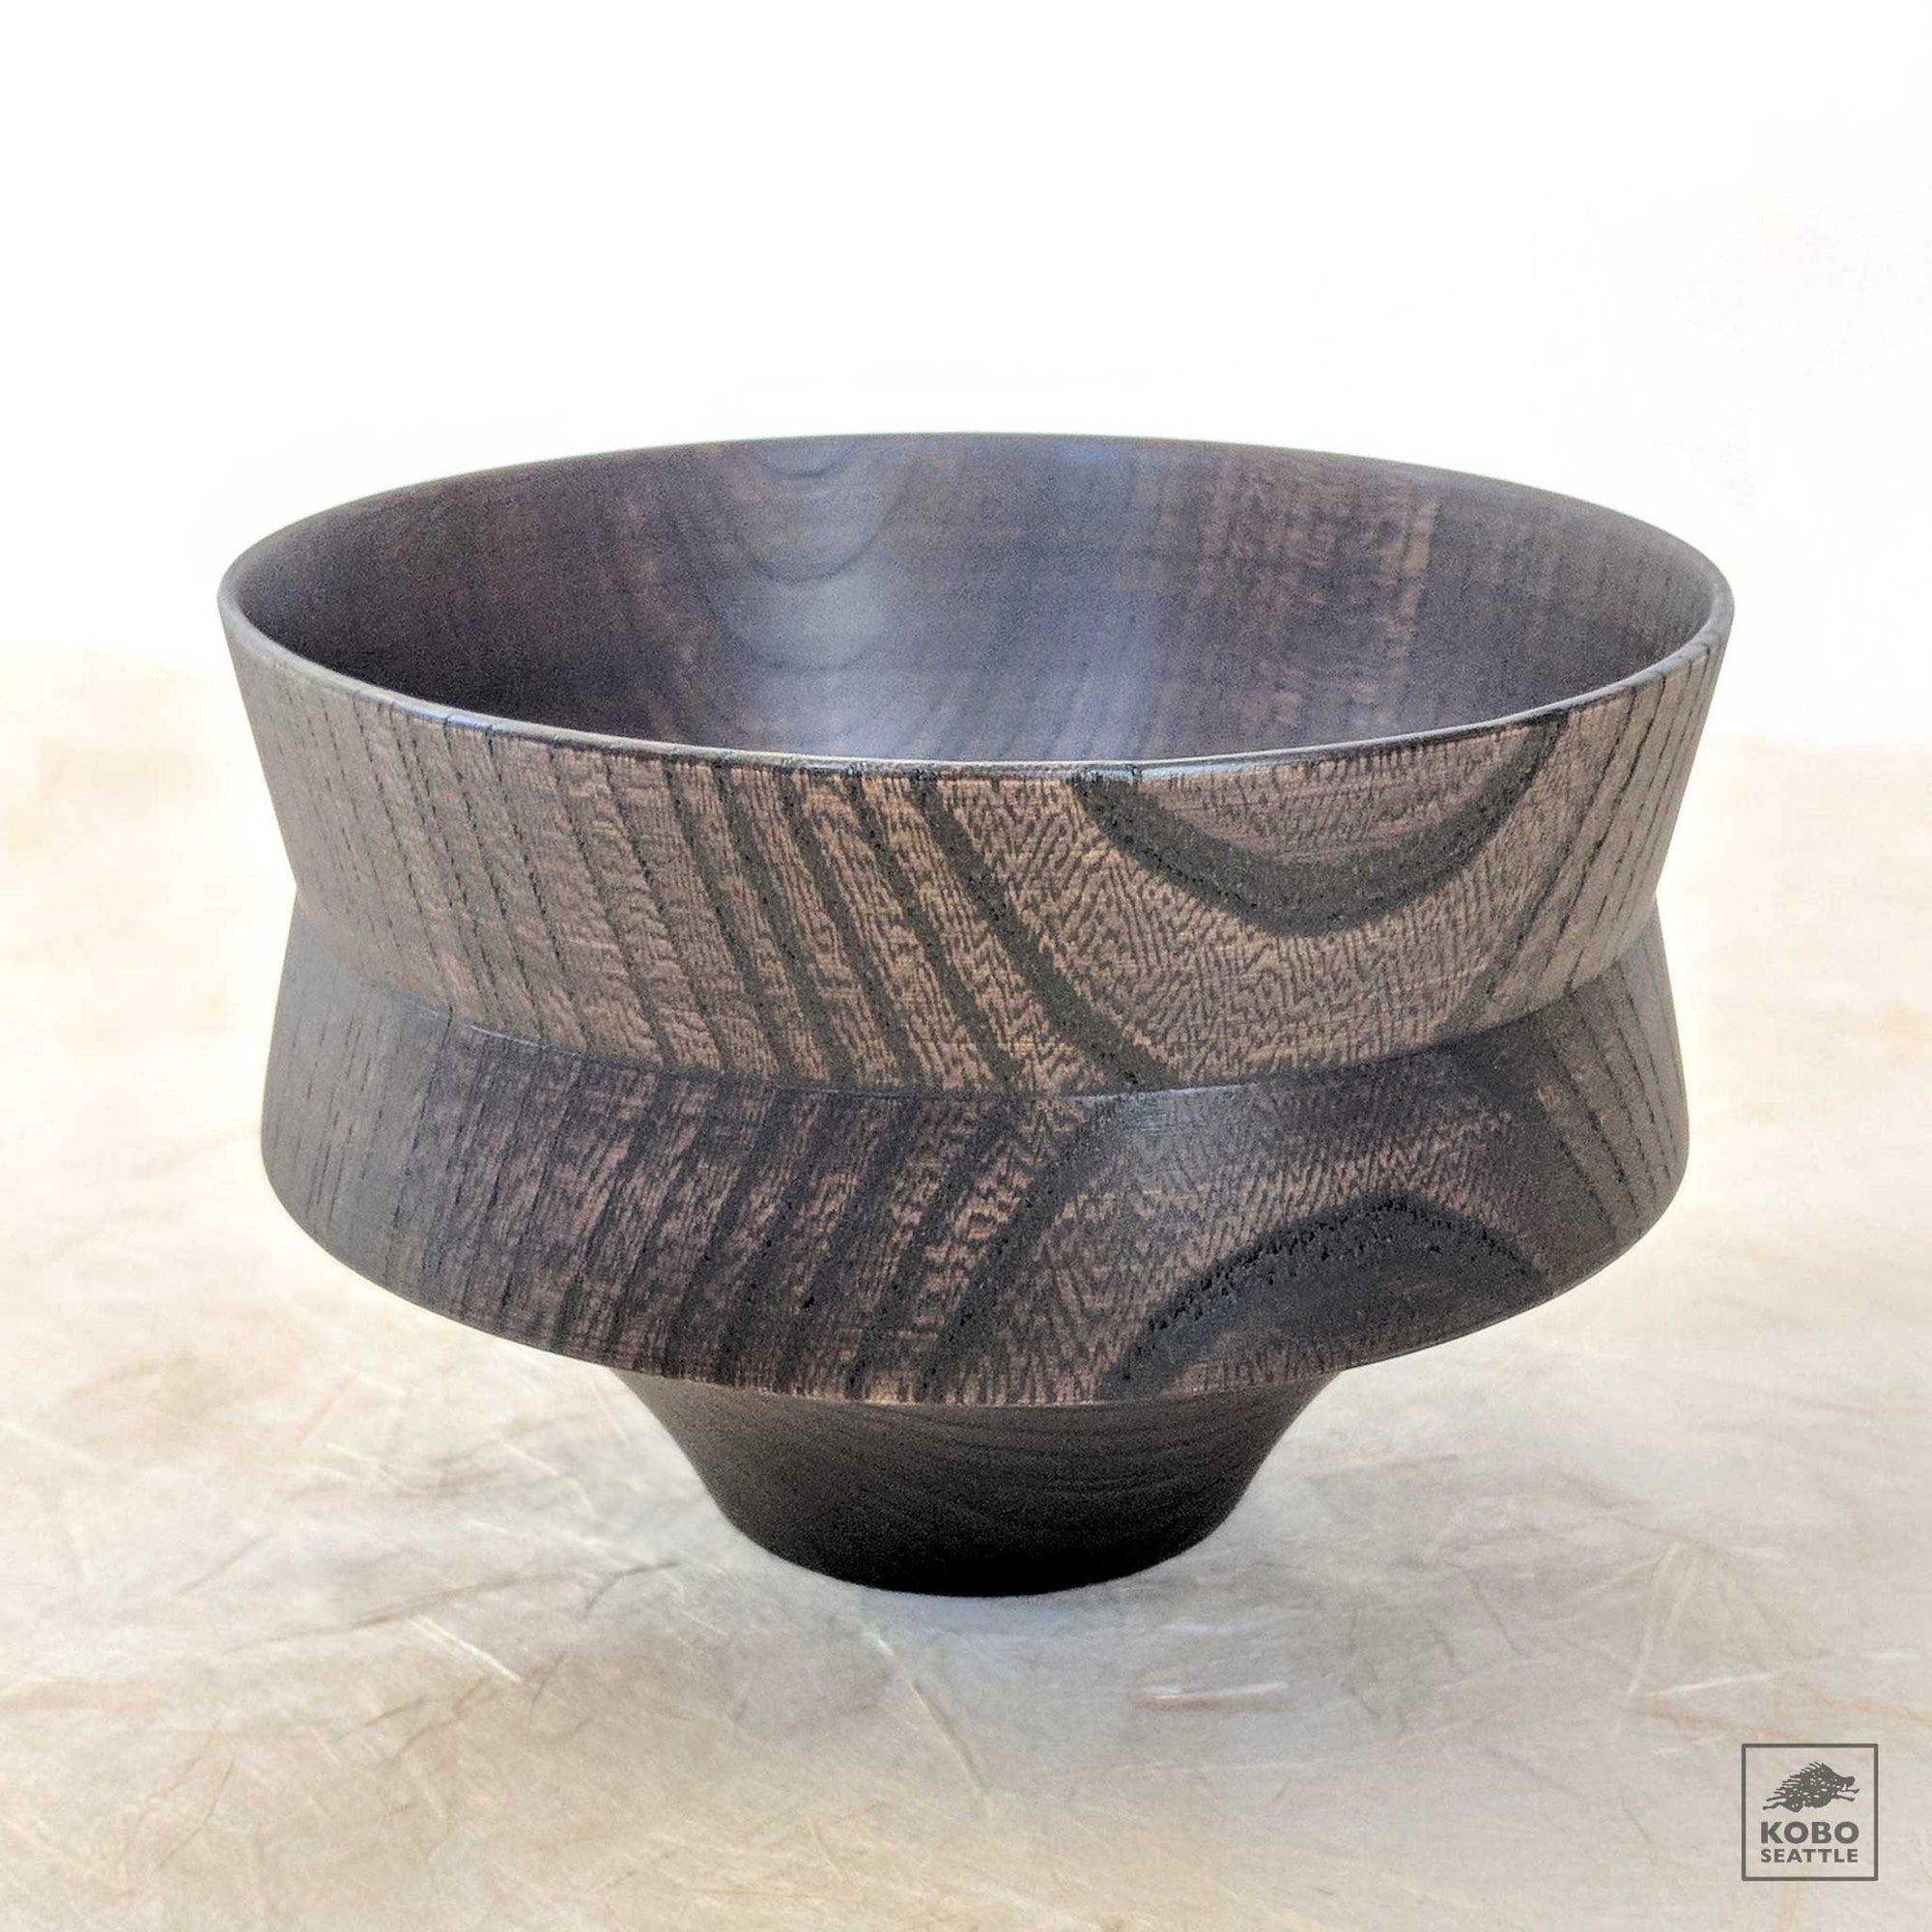 Japanese Elm Bowl - Kine Natural & Black